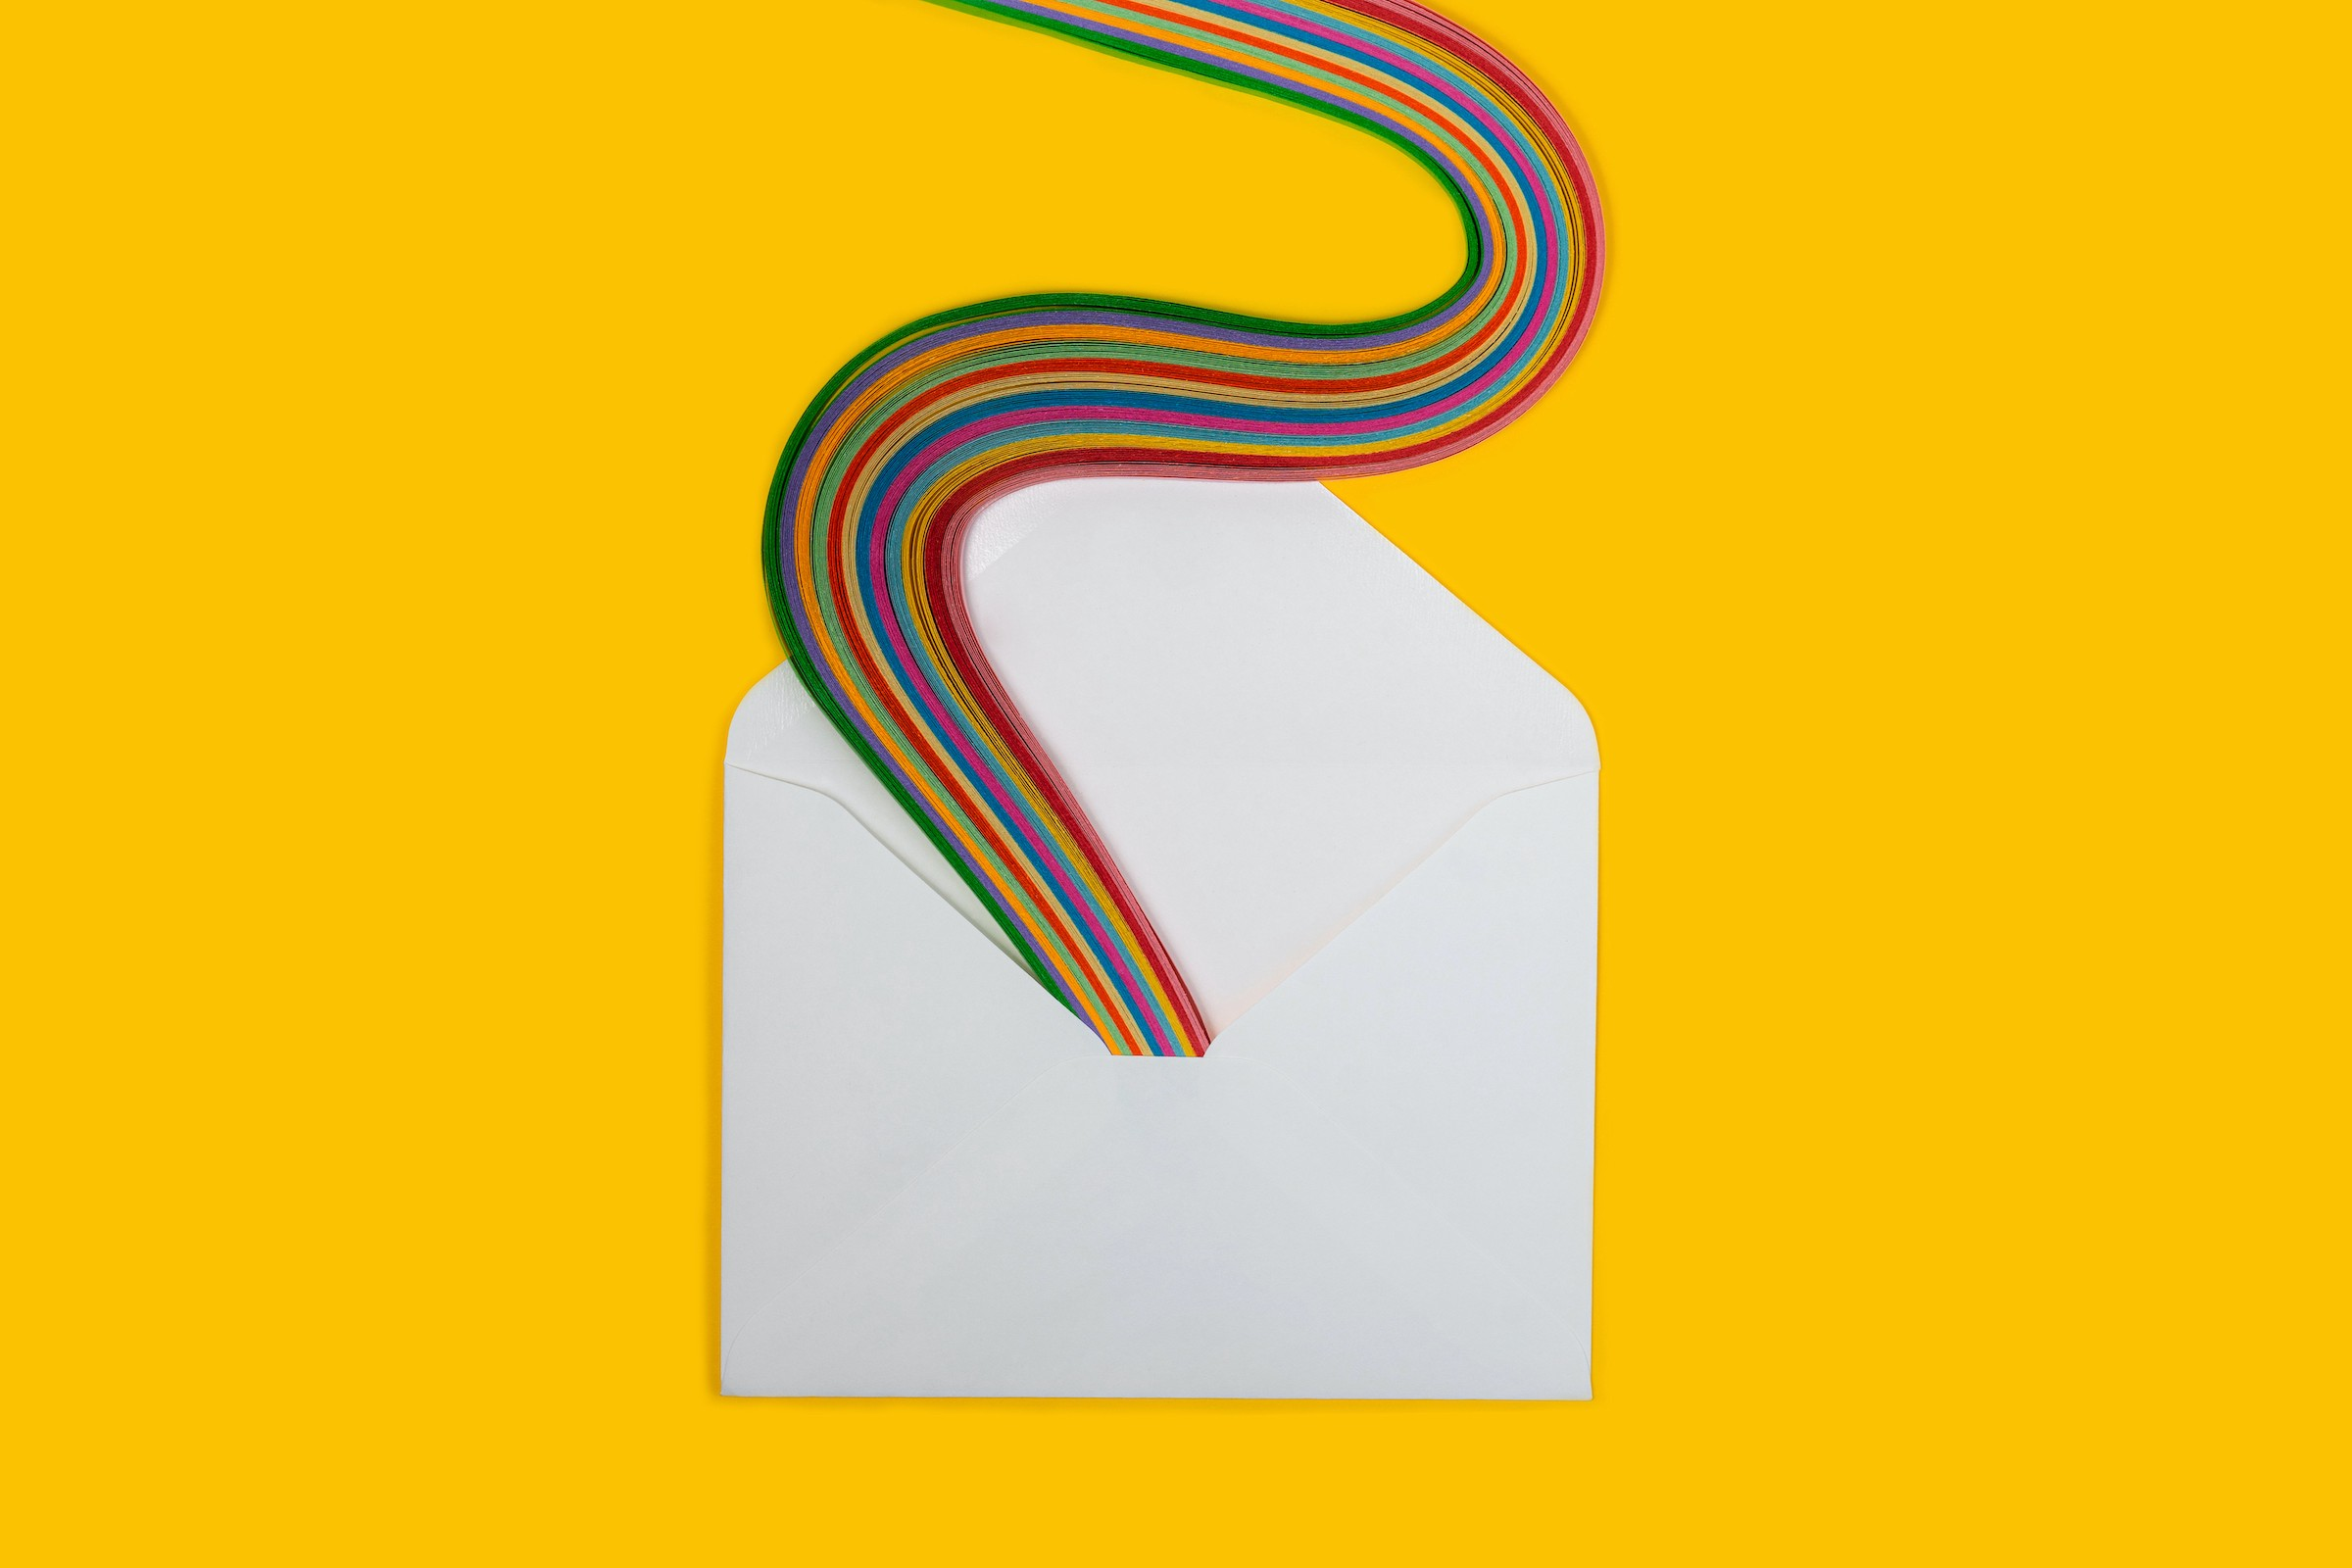 An open paper envelope on a yellow surface. A serpentine rainbow snakes its way out of the envelope.